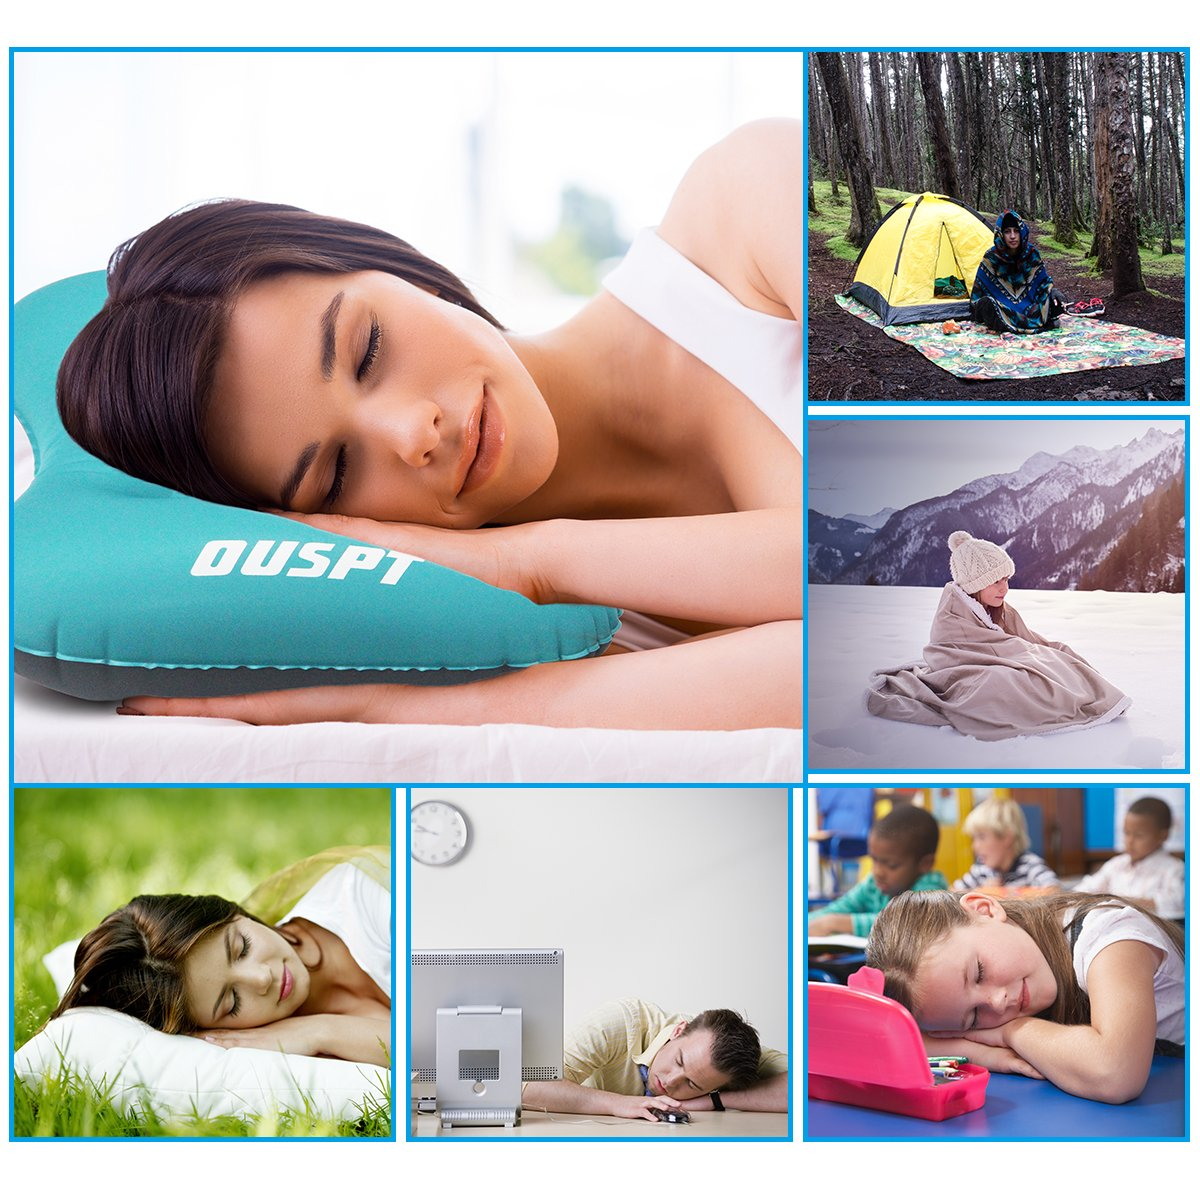 OUSPT Inflatable Camping Pillows Ultralight Compact Pillows Compressible Blow up Pillow Comfortable Ergonomic Pillow for Neck & Lumbar Support on Travel Airplane Camp Backpacking Sleeping